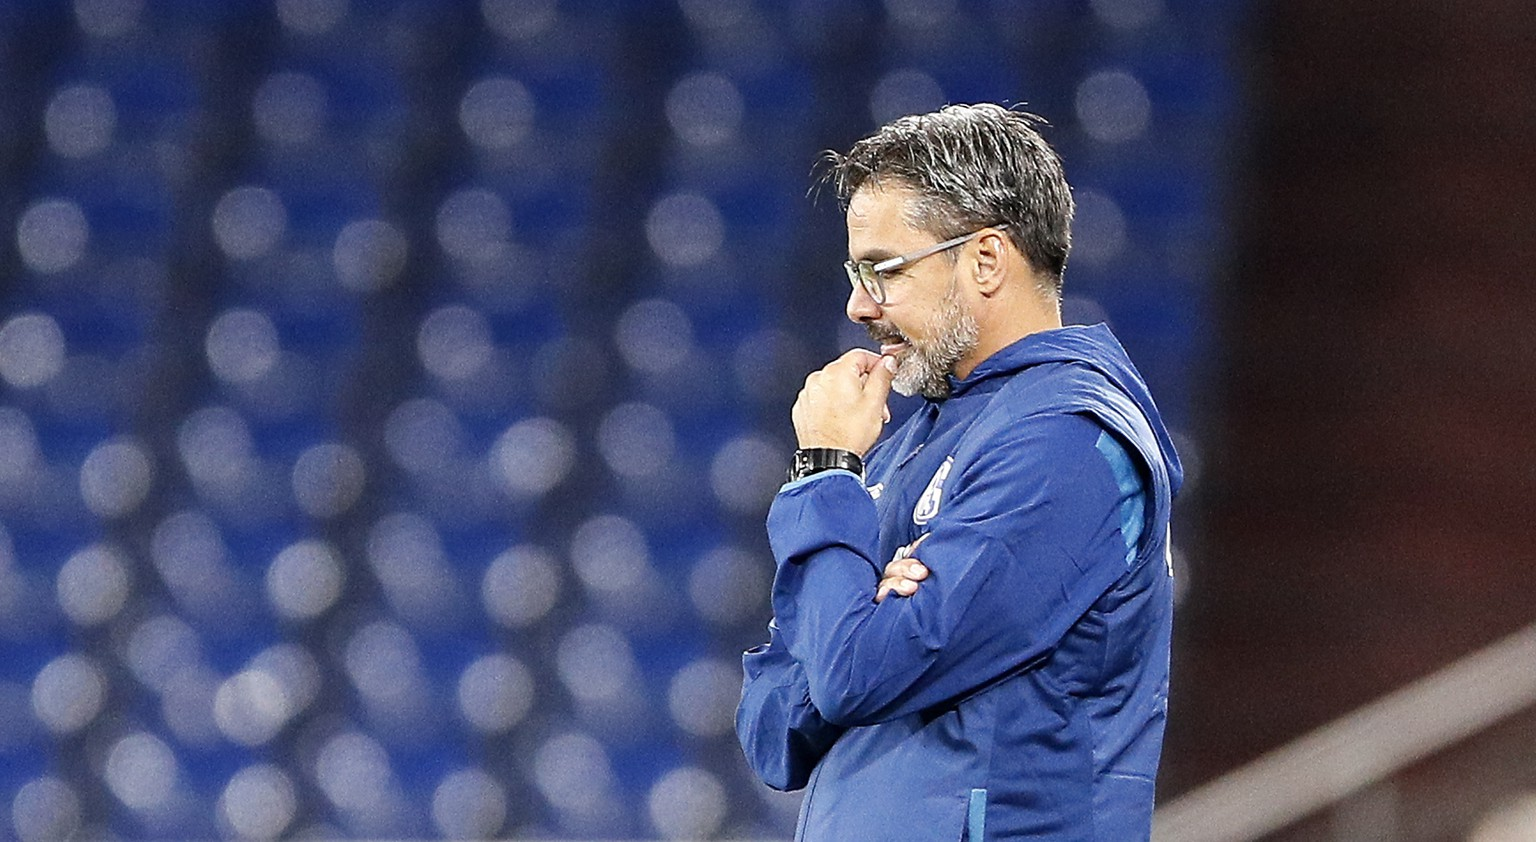 Schalke's head coach David Wagner reacts during the German Bundesliga soccer match between FC Schalke 04 and Werder Bremen in Gelsenkirchen, Germany, Saturday, Sept. 26, 2020. (AP Photo/Martin Meissner)